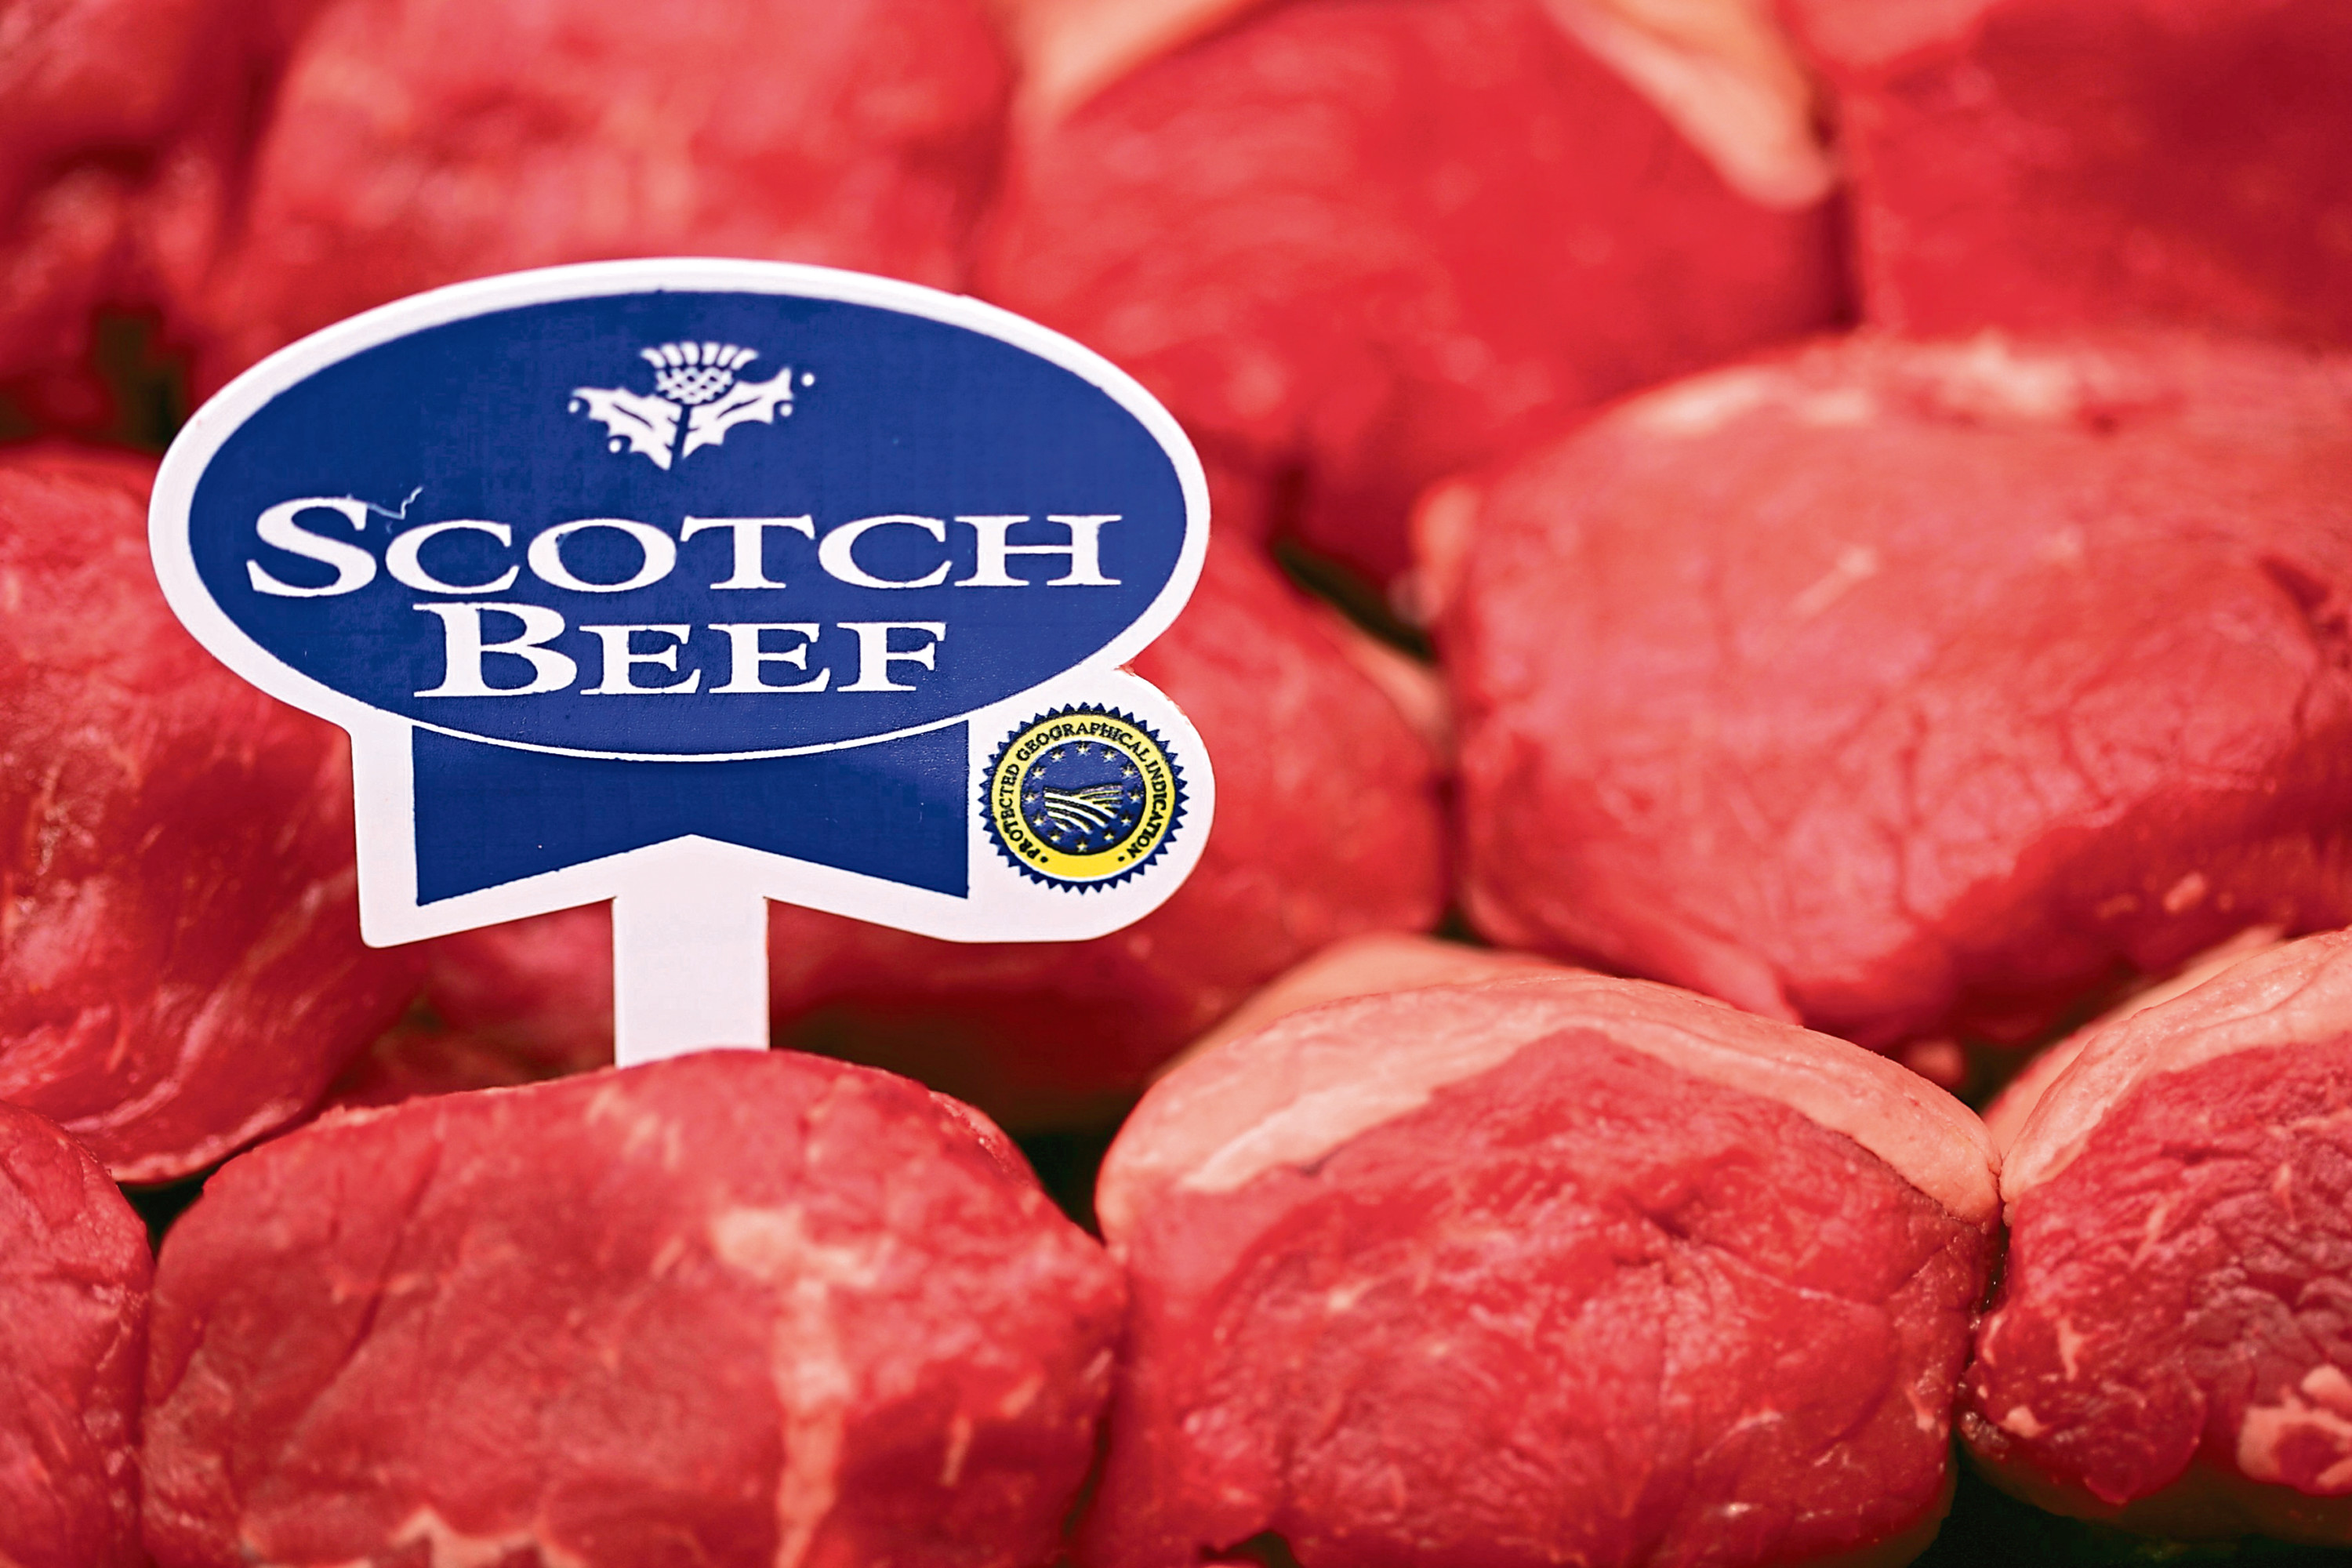 Scotch Beef is back on sale in Canada for the first time since 1996.